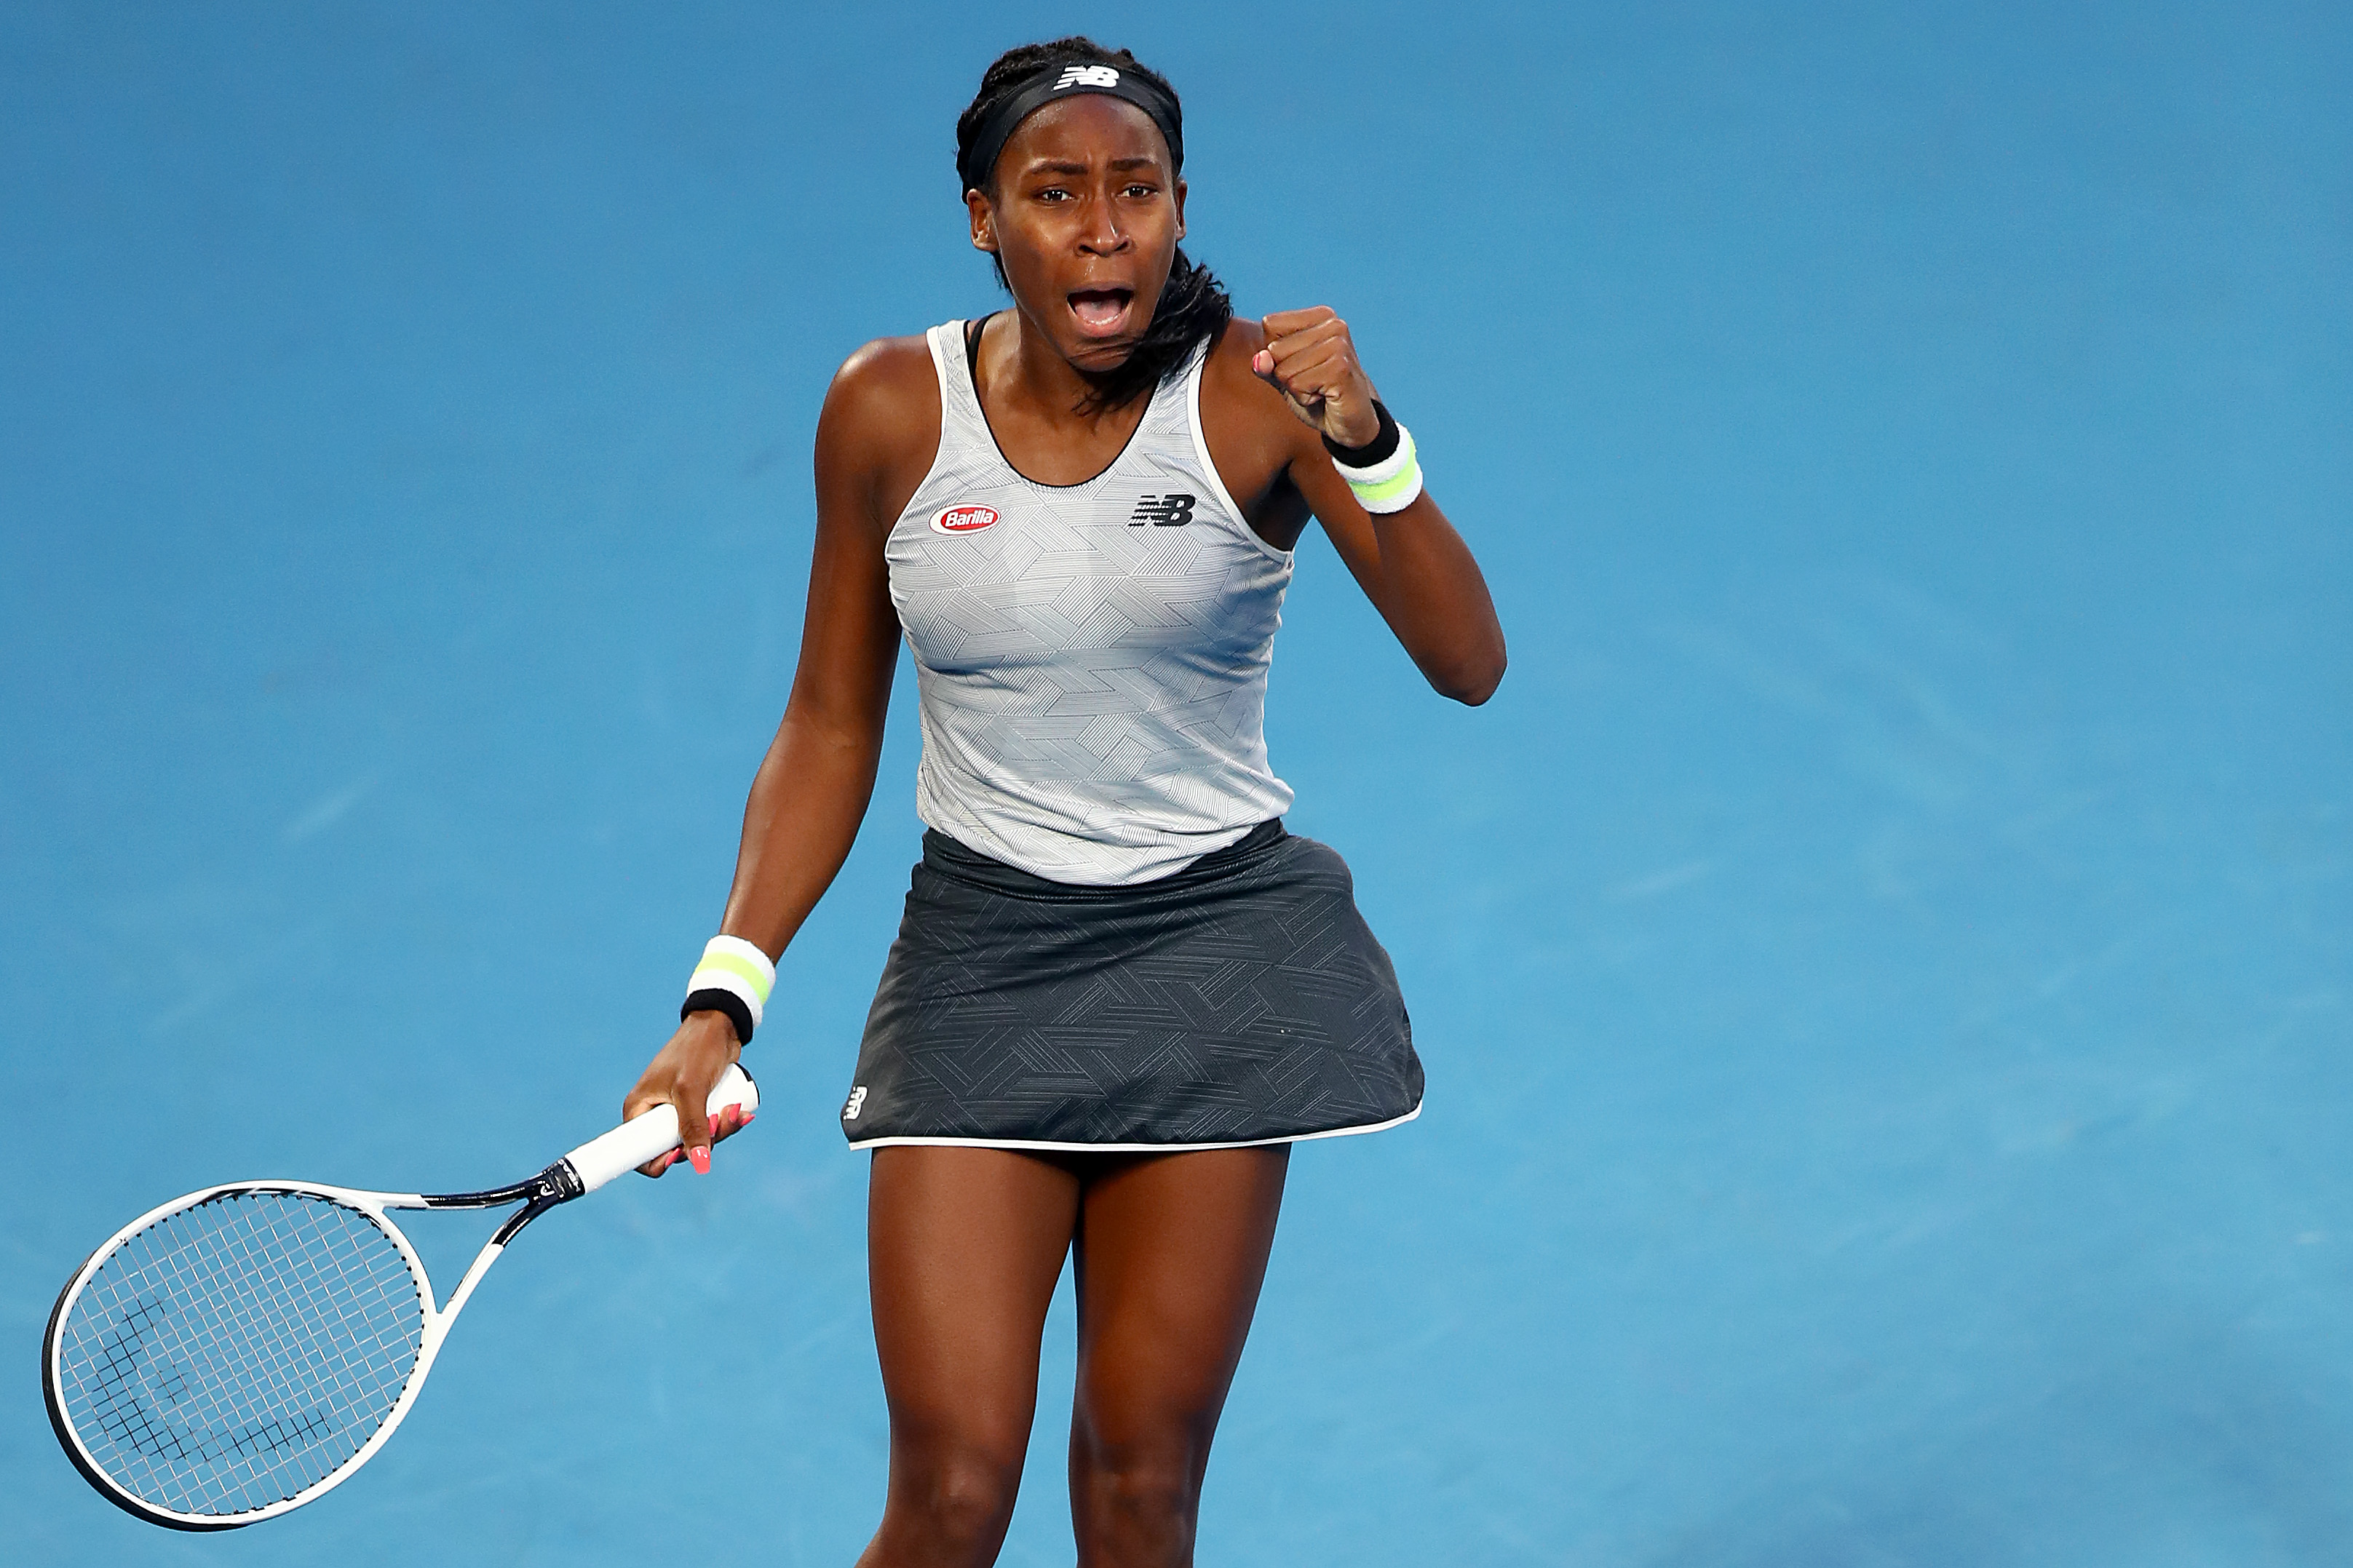 Coco Gauff looked completely unfazed in her win over Naomi Osaka